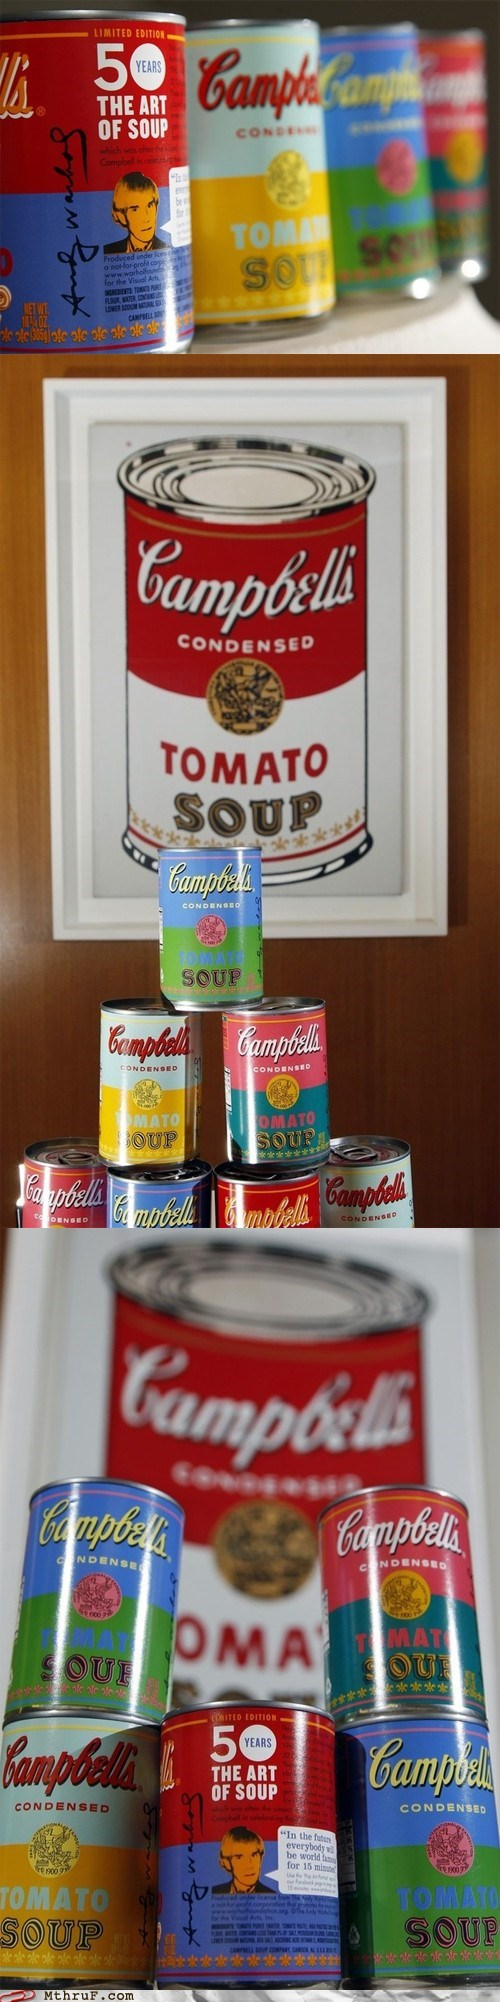 Workplace WIN: Campbells to Begin Selling Andy Warhol Soup Cans